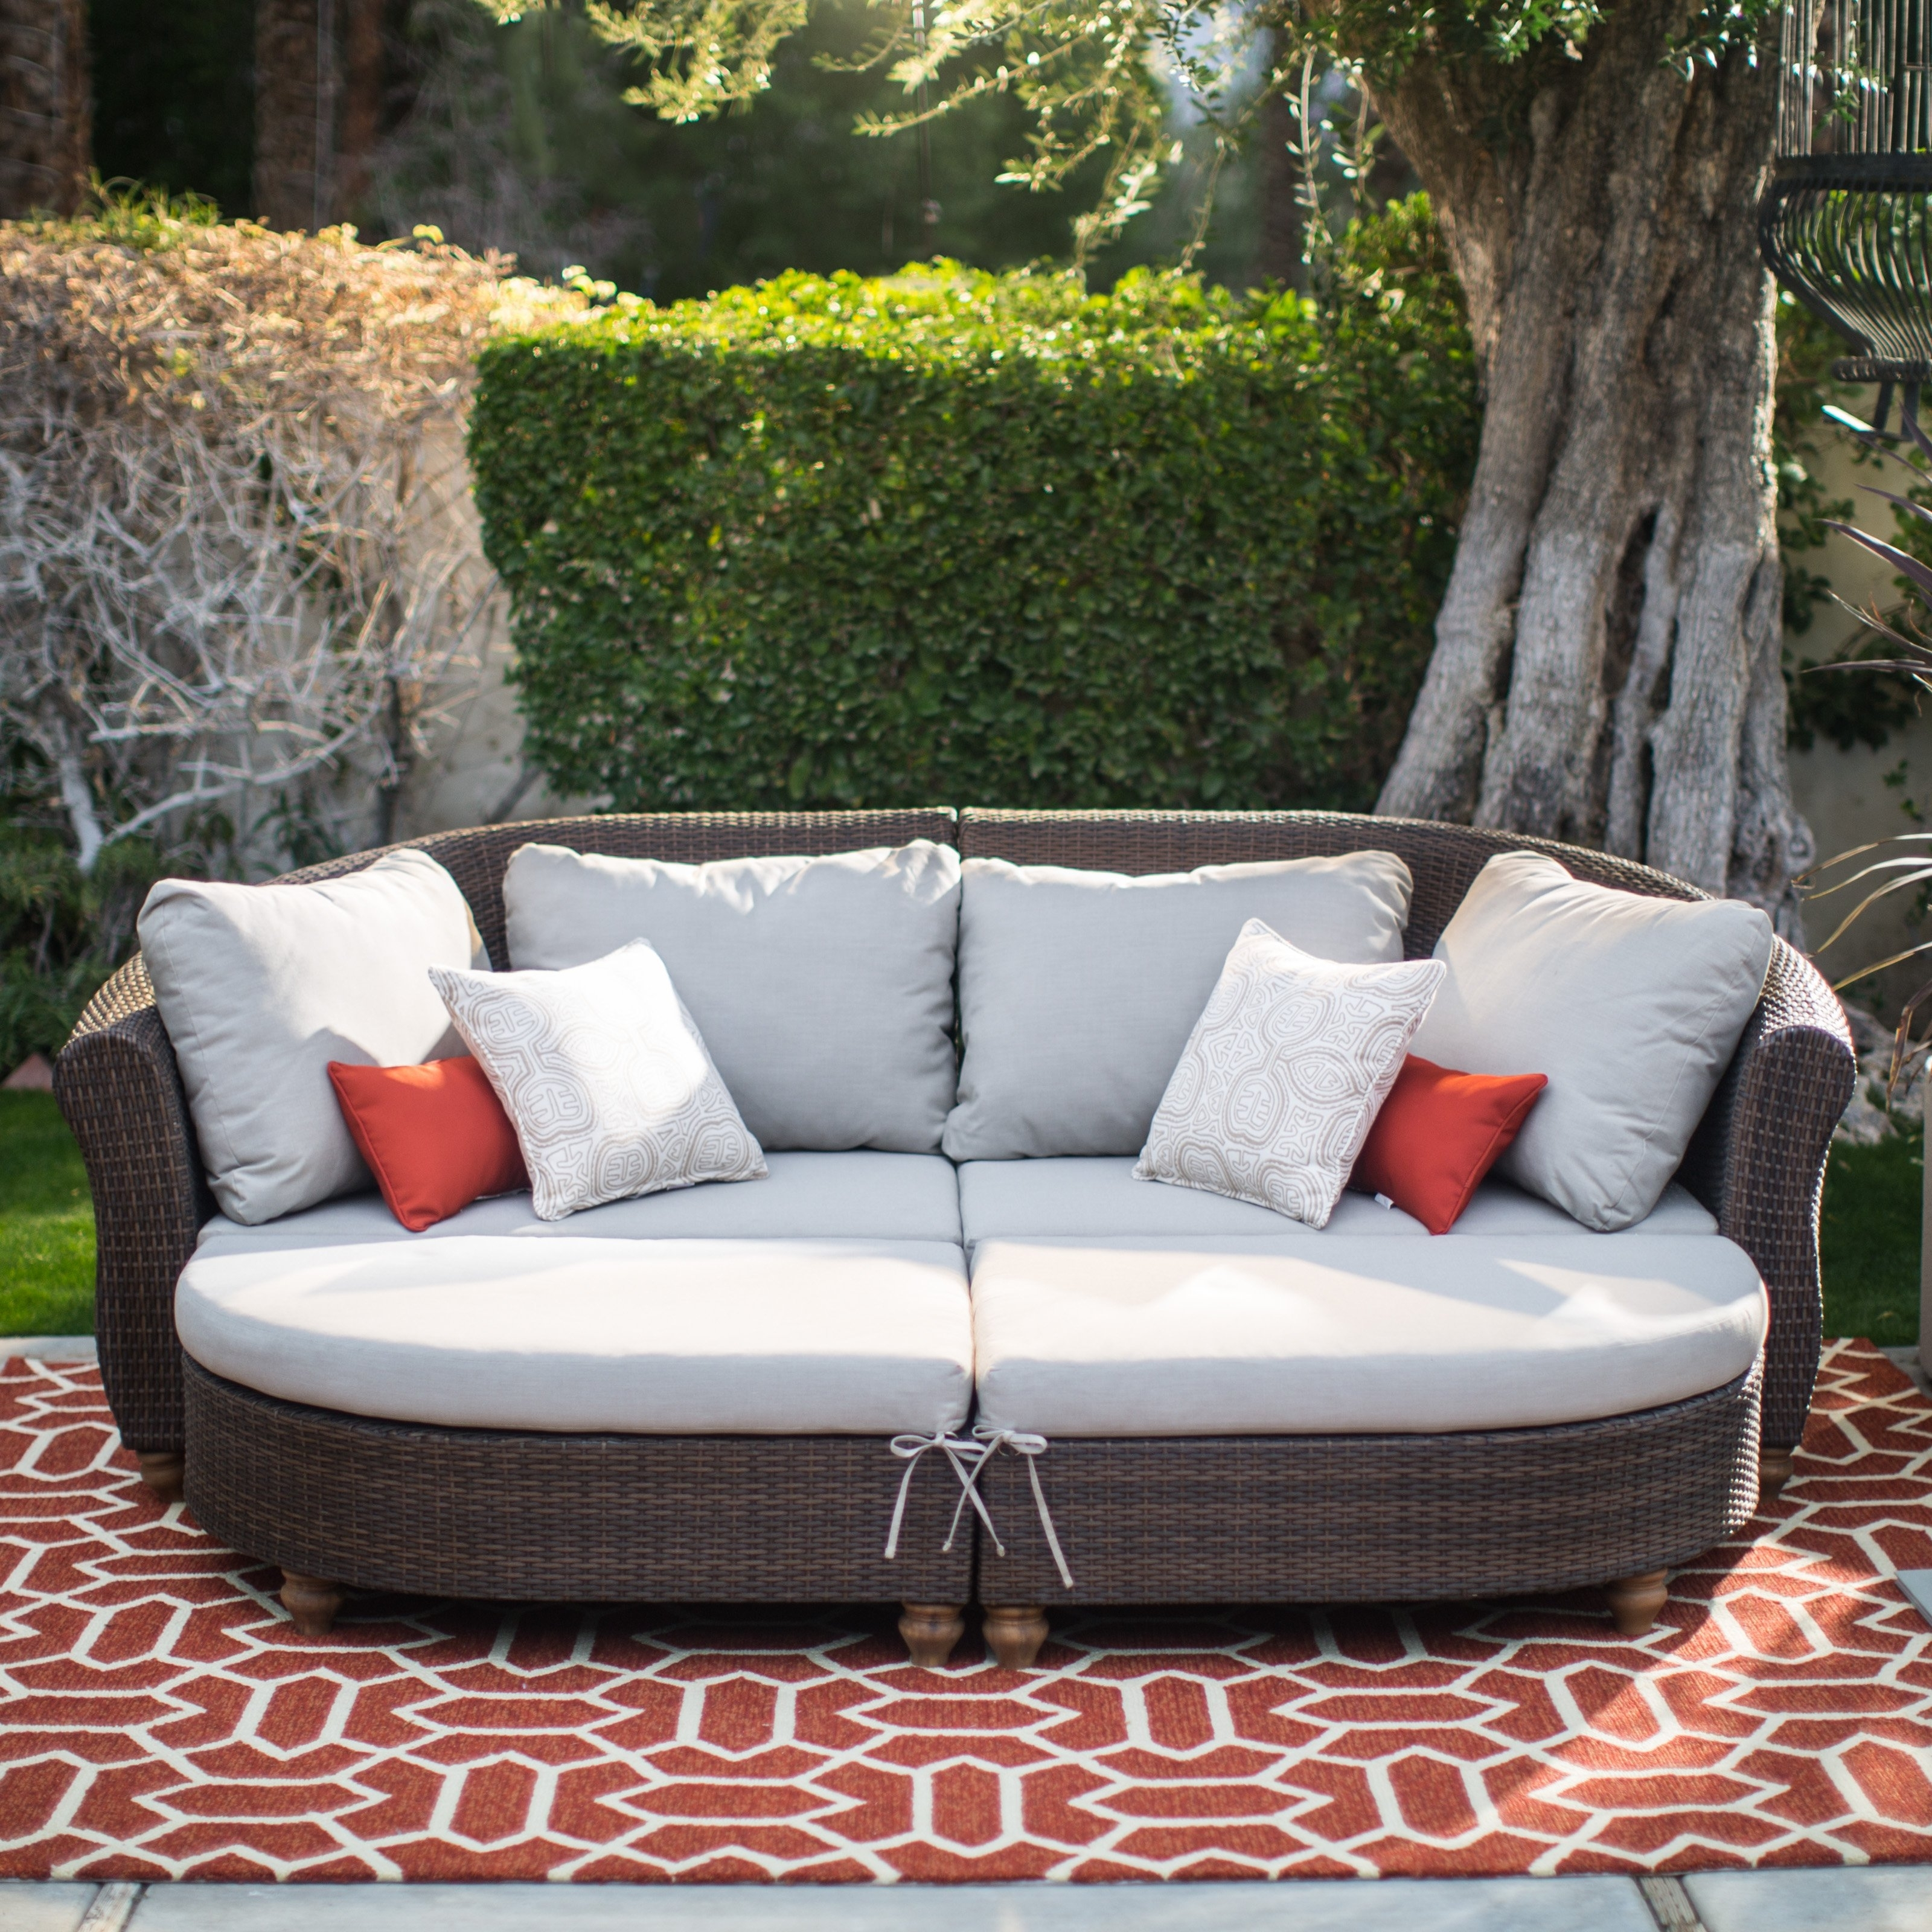 Patio Conversation Sets At Target In Favorite Cozy Living Room Designs Tags : 60+ Stylish Patio Furniture (View 8 of 15)